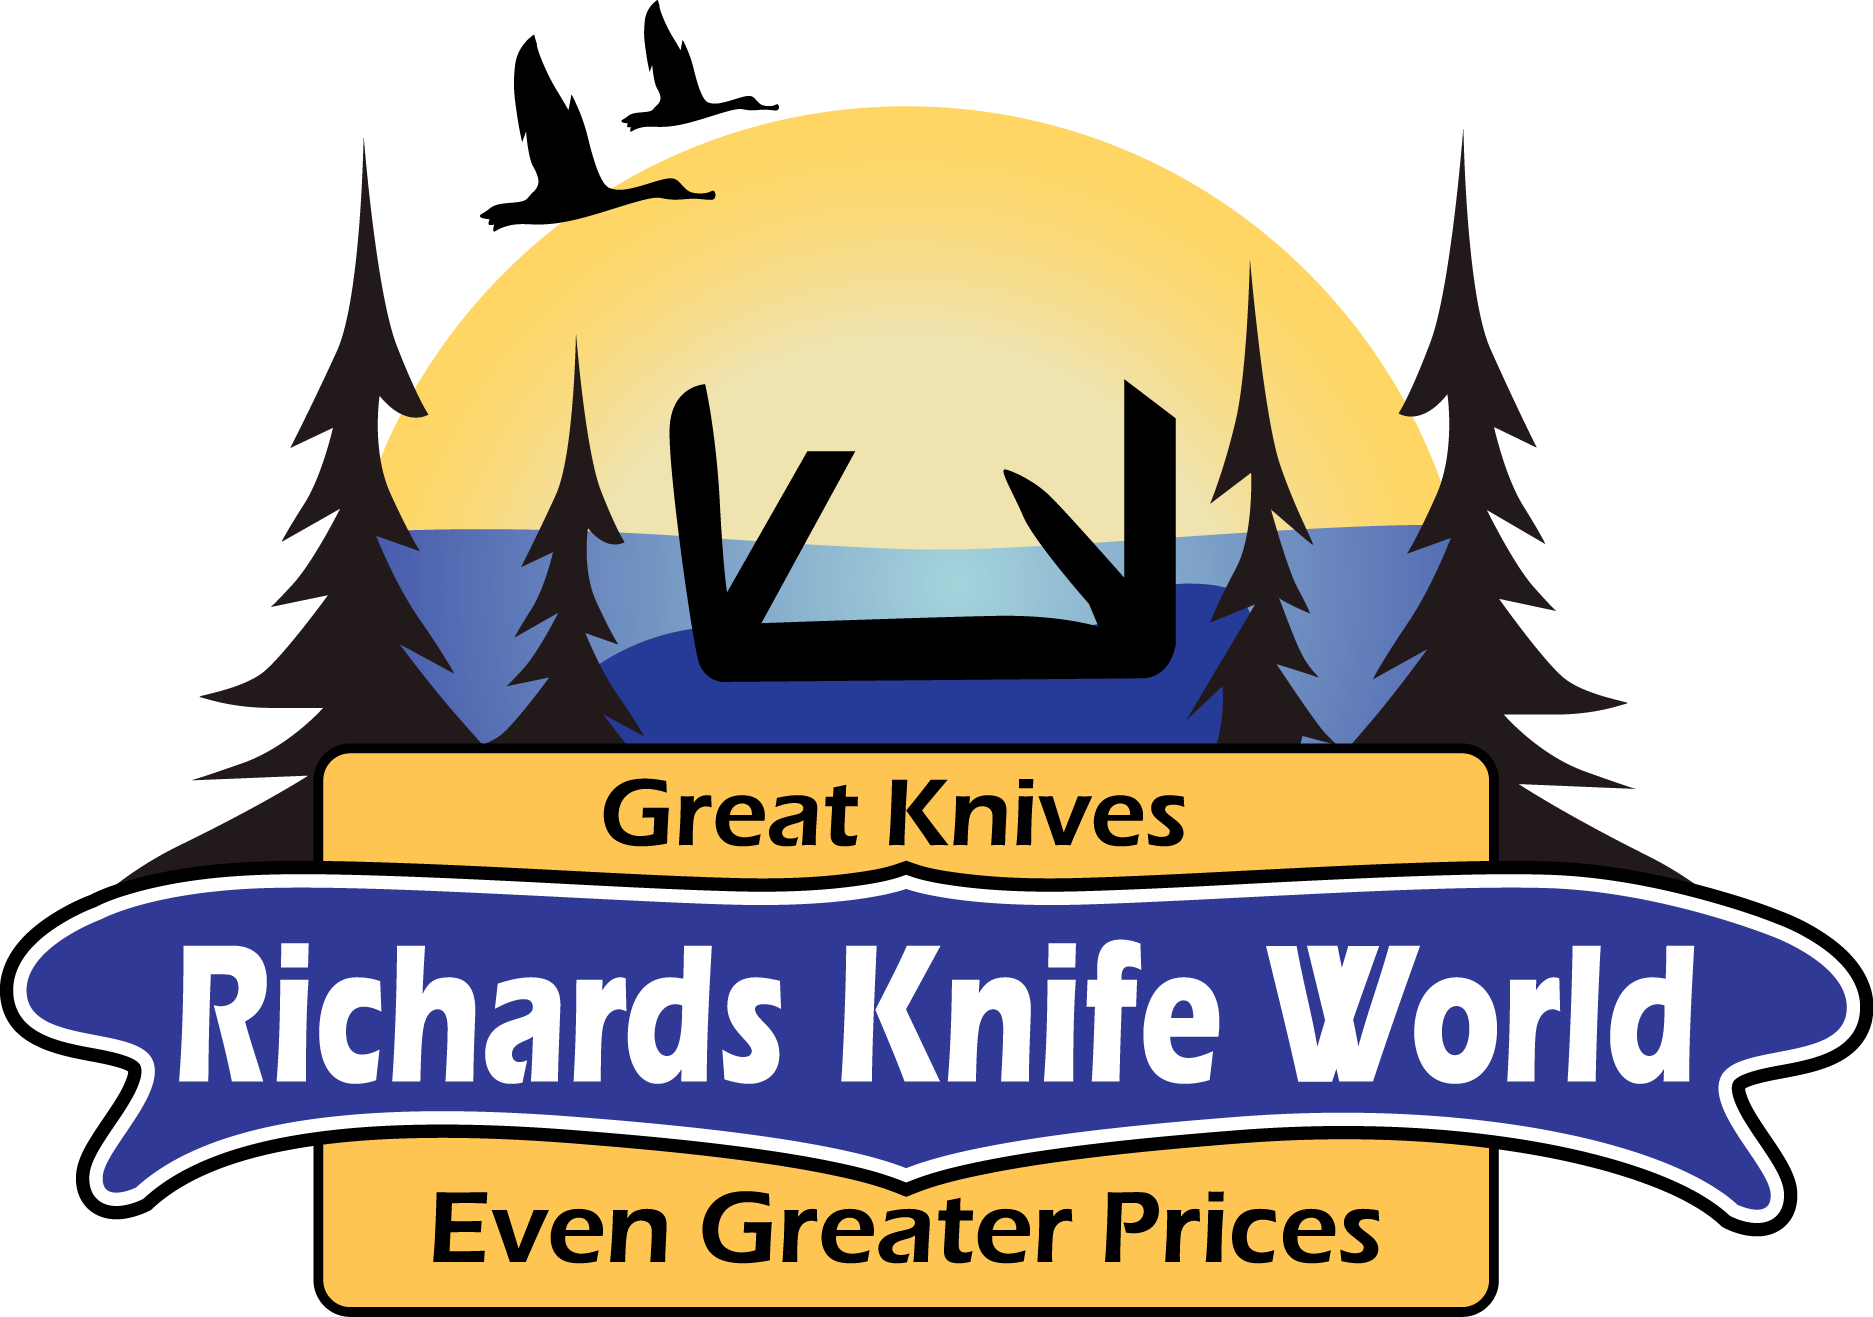 Richards Knife World